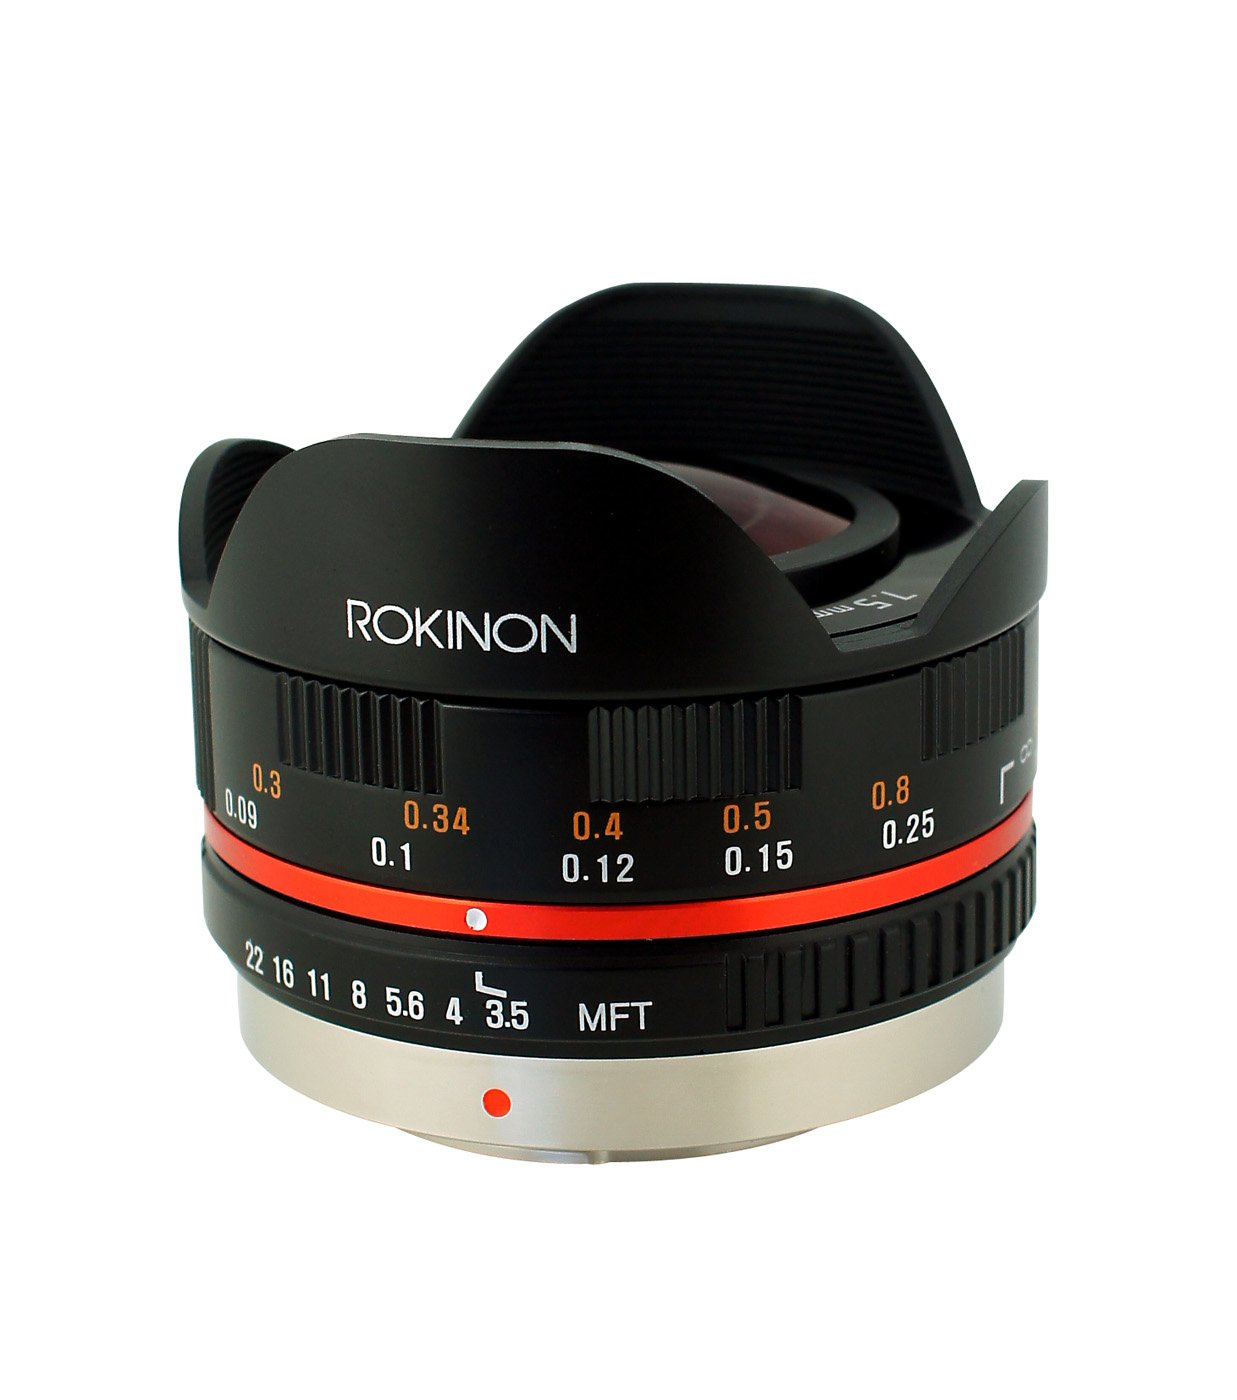 Rokinon Cine CV85M-MFT 85mm T1.5 Cine Aspherical Lens for Micro Four-Thirds 85-85mm Fixed Lens for Olympus/Panasonic Micro 4/3 Cameras